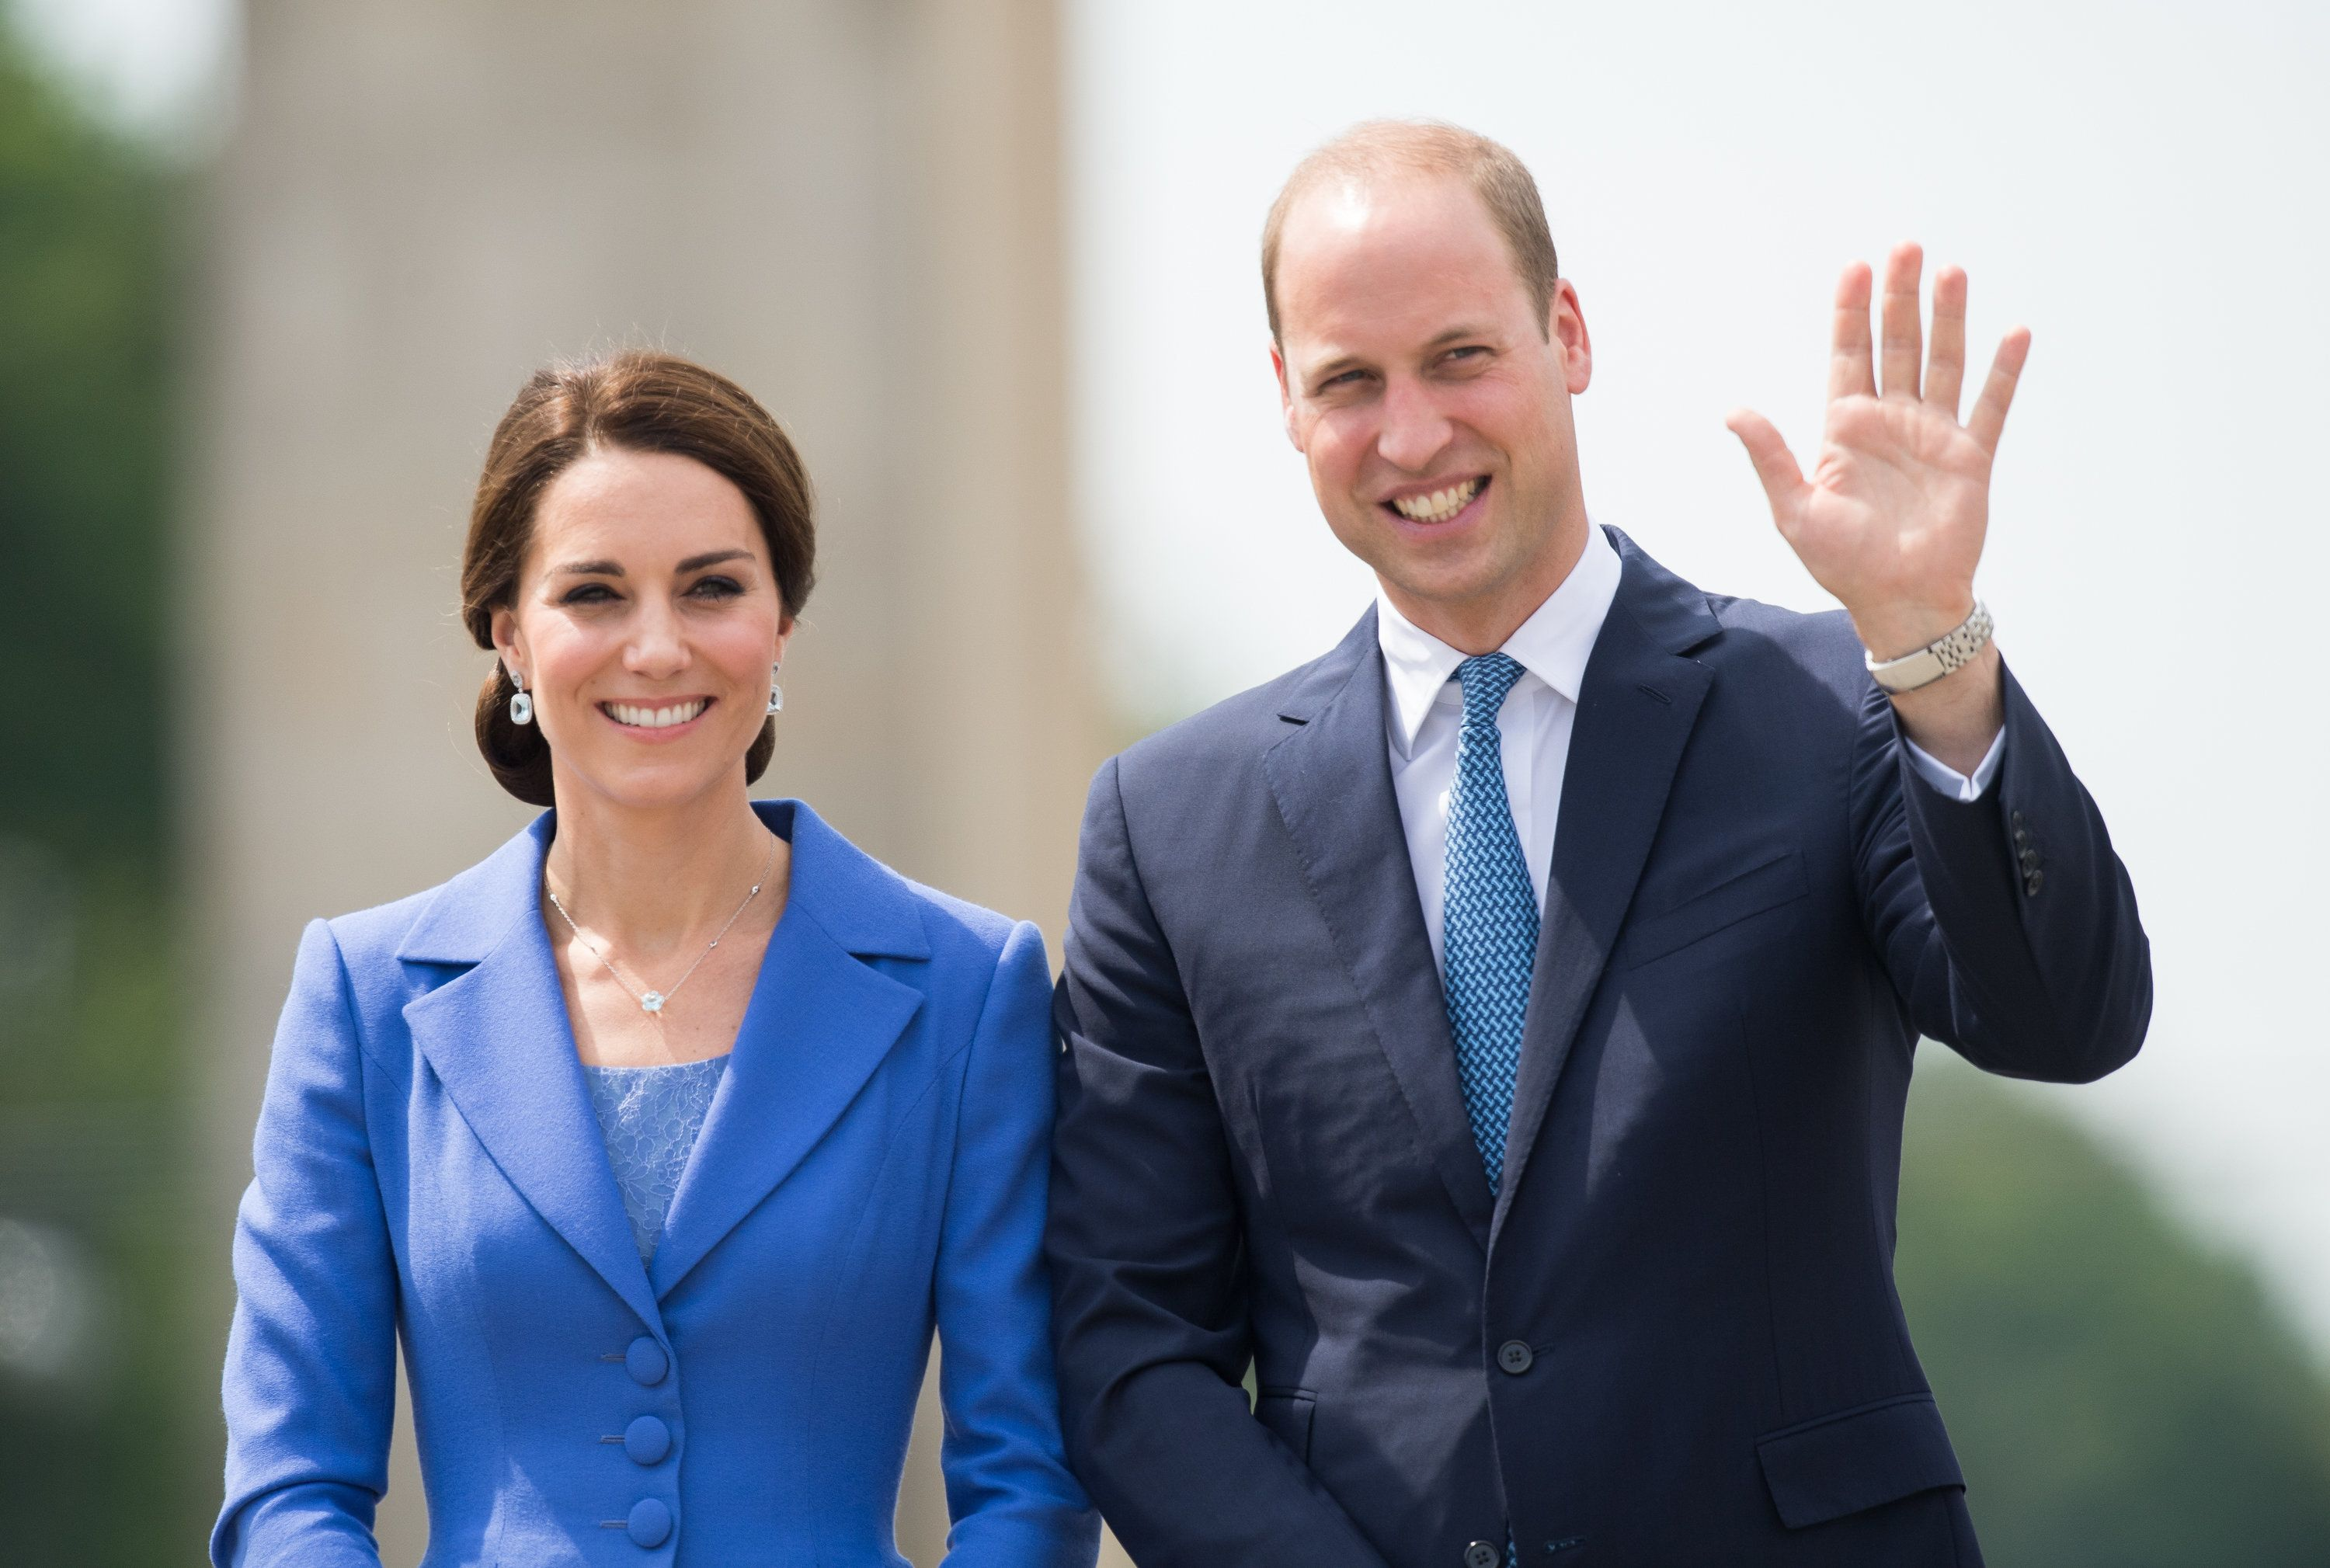 BERLIN, GERMANY - JULY 19:  Catherine, Duchess of Cambridge and Prince William, Duke of Cambridge visit the Brandenburg Gate during an official visit to Poland and Germany on July 19, 2017 in Berlin, Germany.  (Photo by Samir Hussein/WireImage)